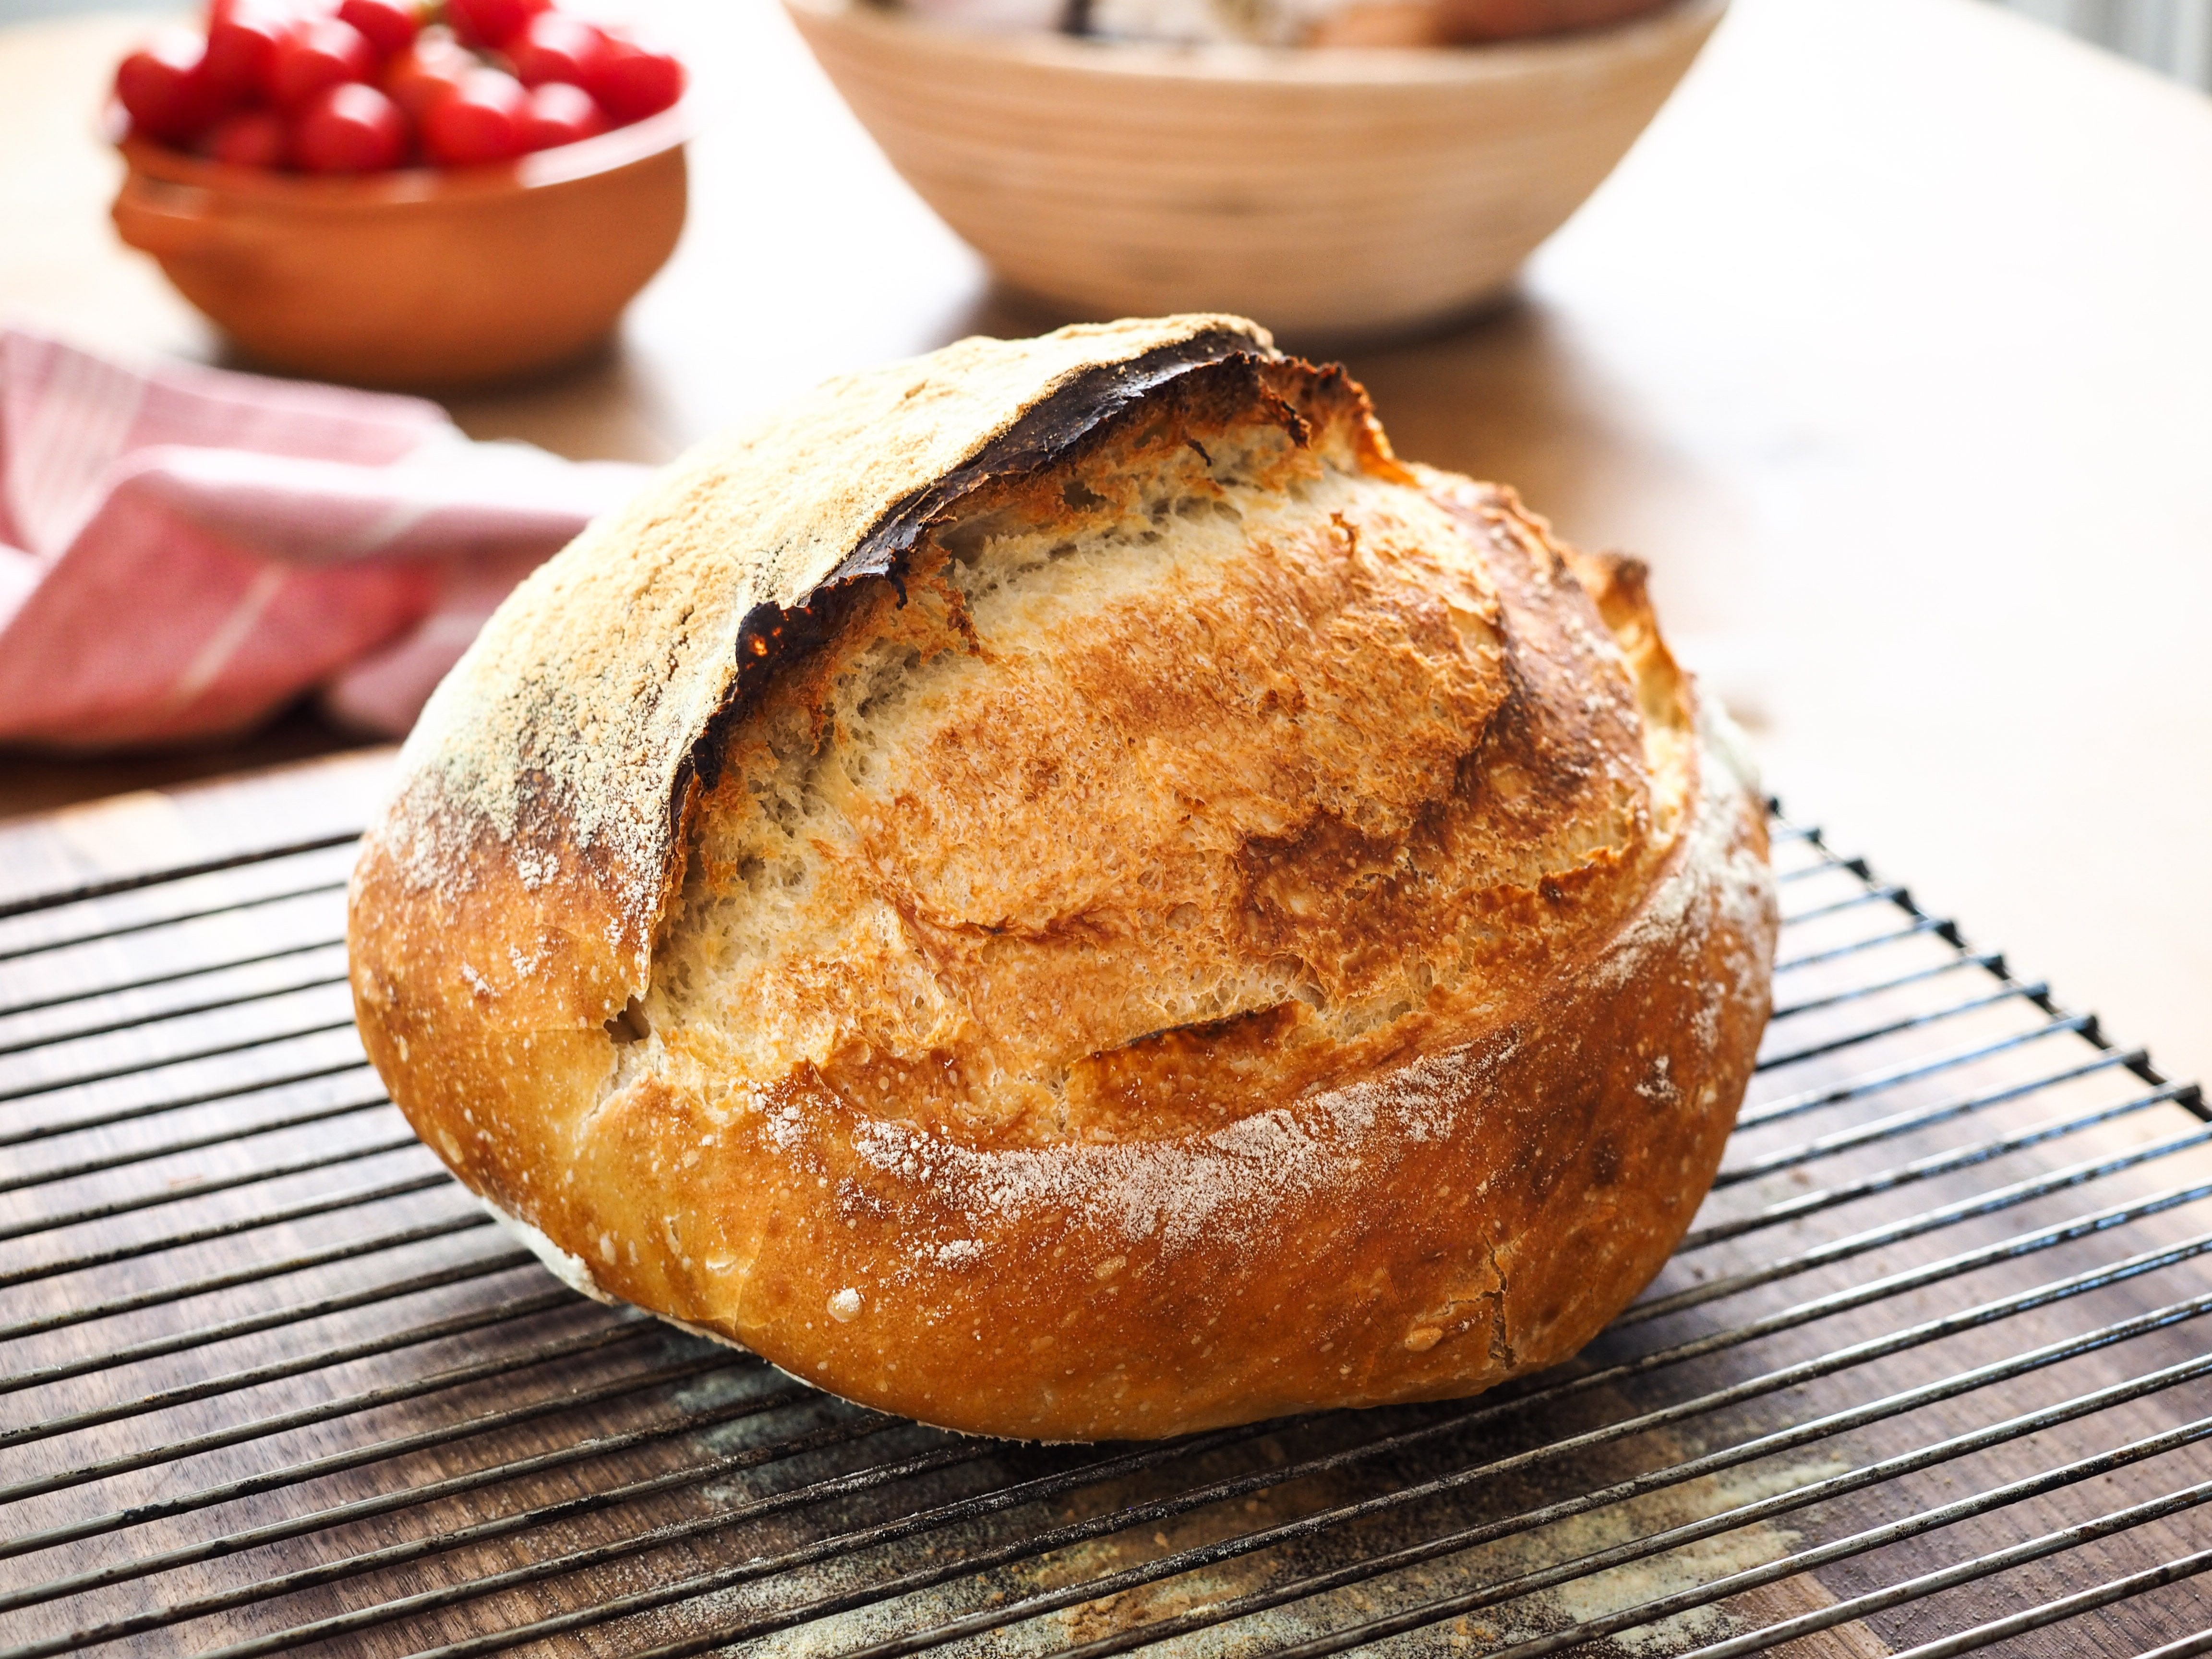 Overnight Bread Baked In A Cast Iron Pot Homemade Bread Recipes Sbs Food